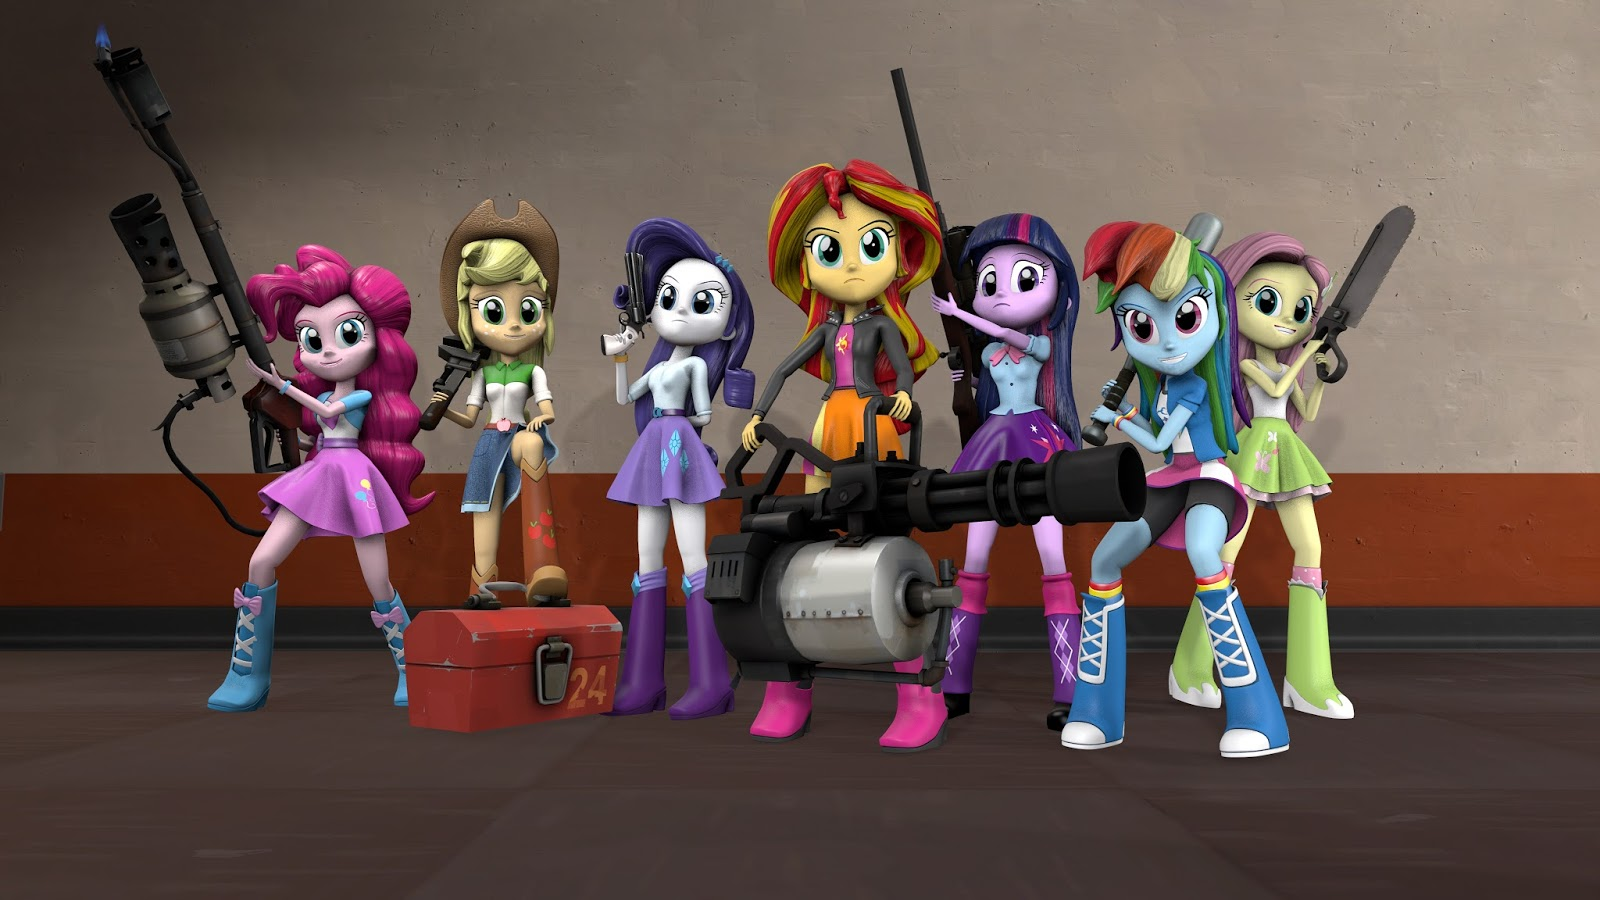 Anime Characters For Gmod : Equestria daily mlp stuff source girls pack